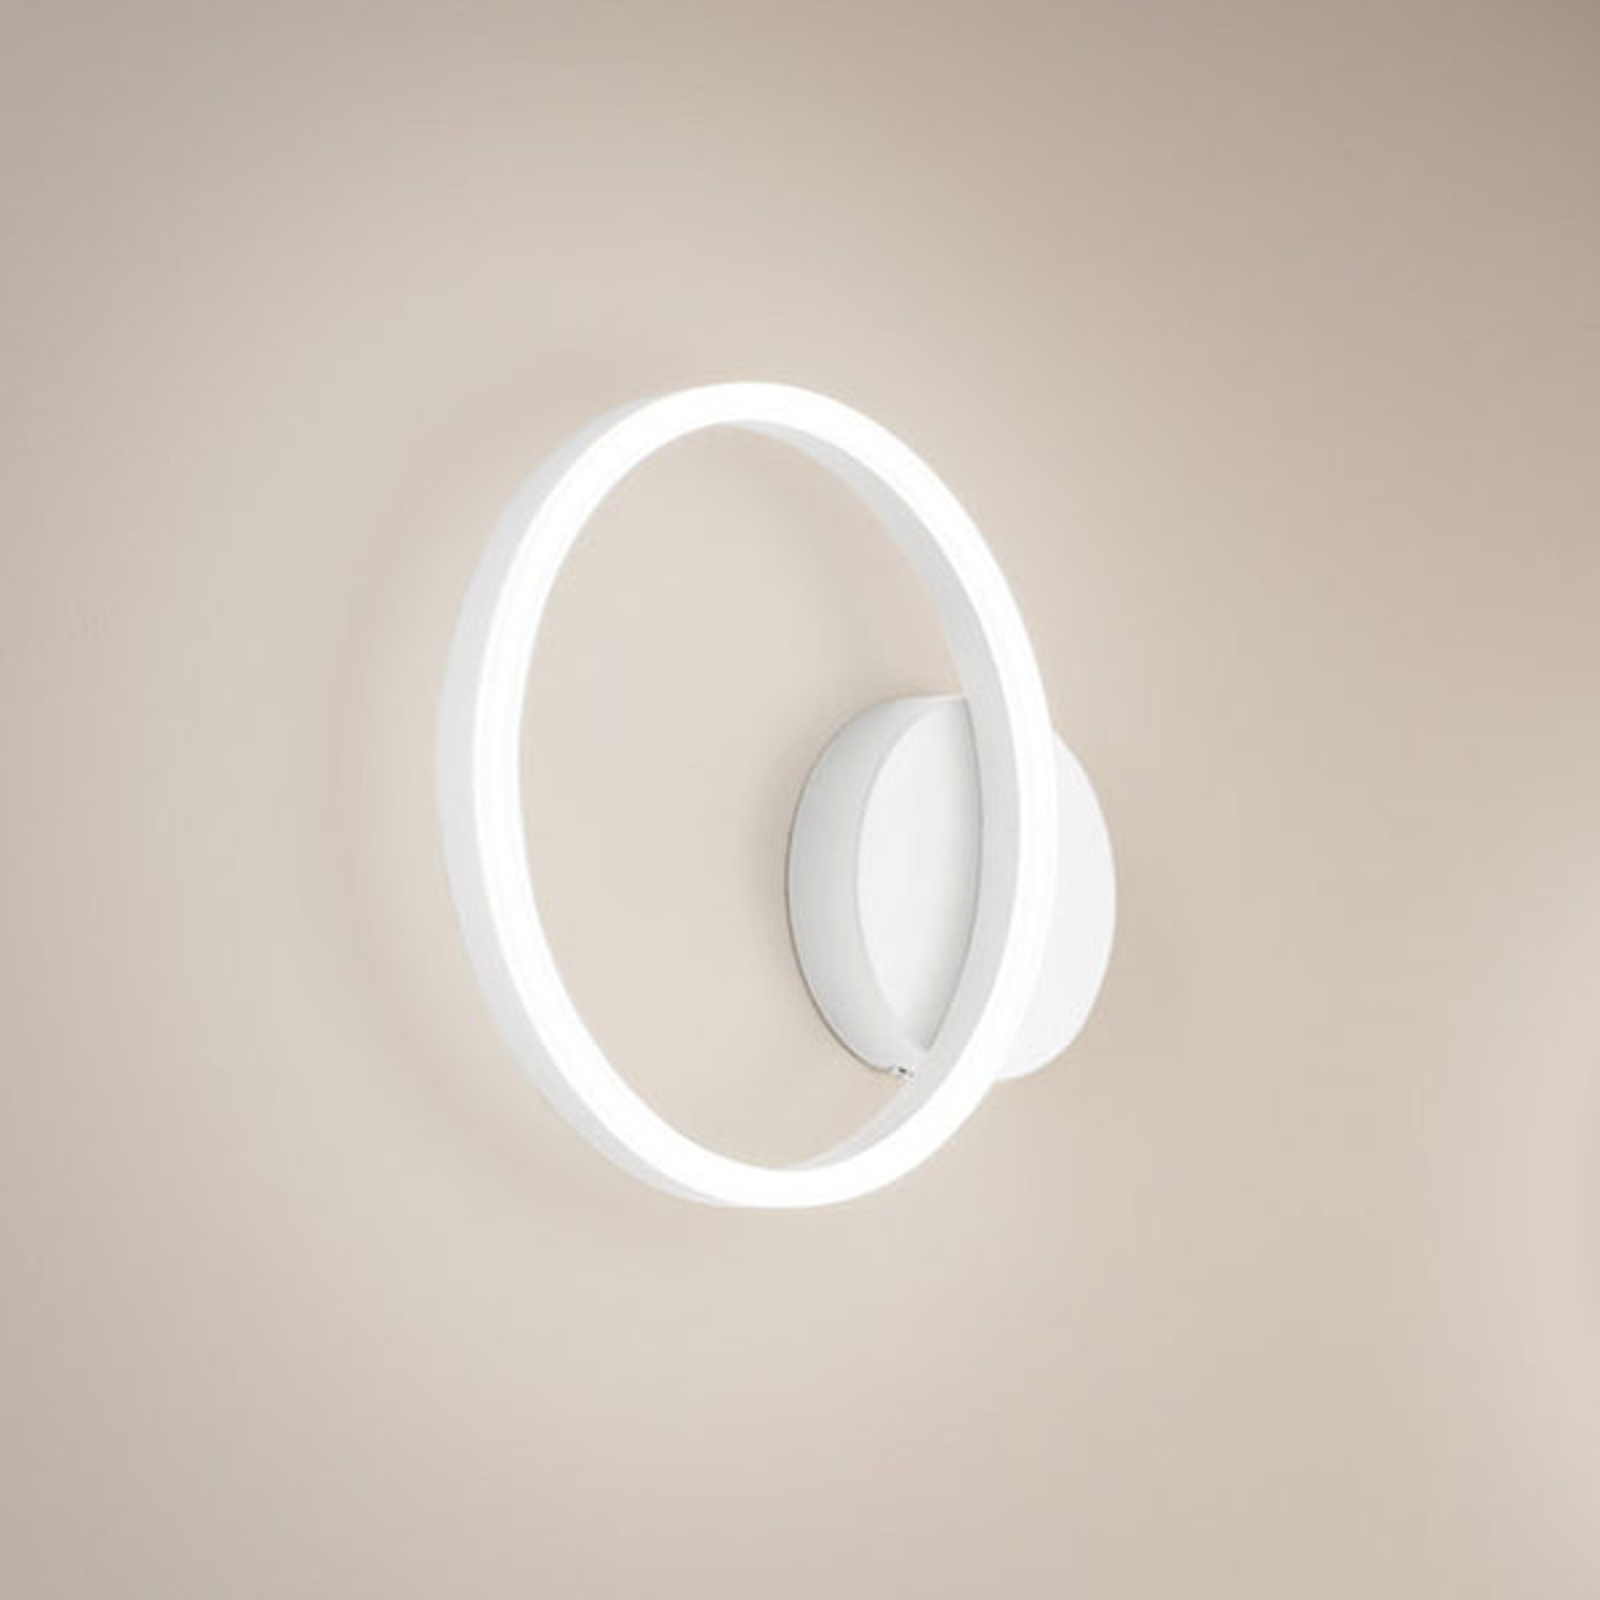 LED wandlamp Giotto, 1-lamp, wit